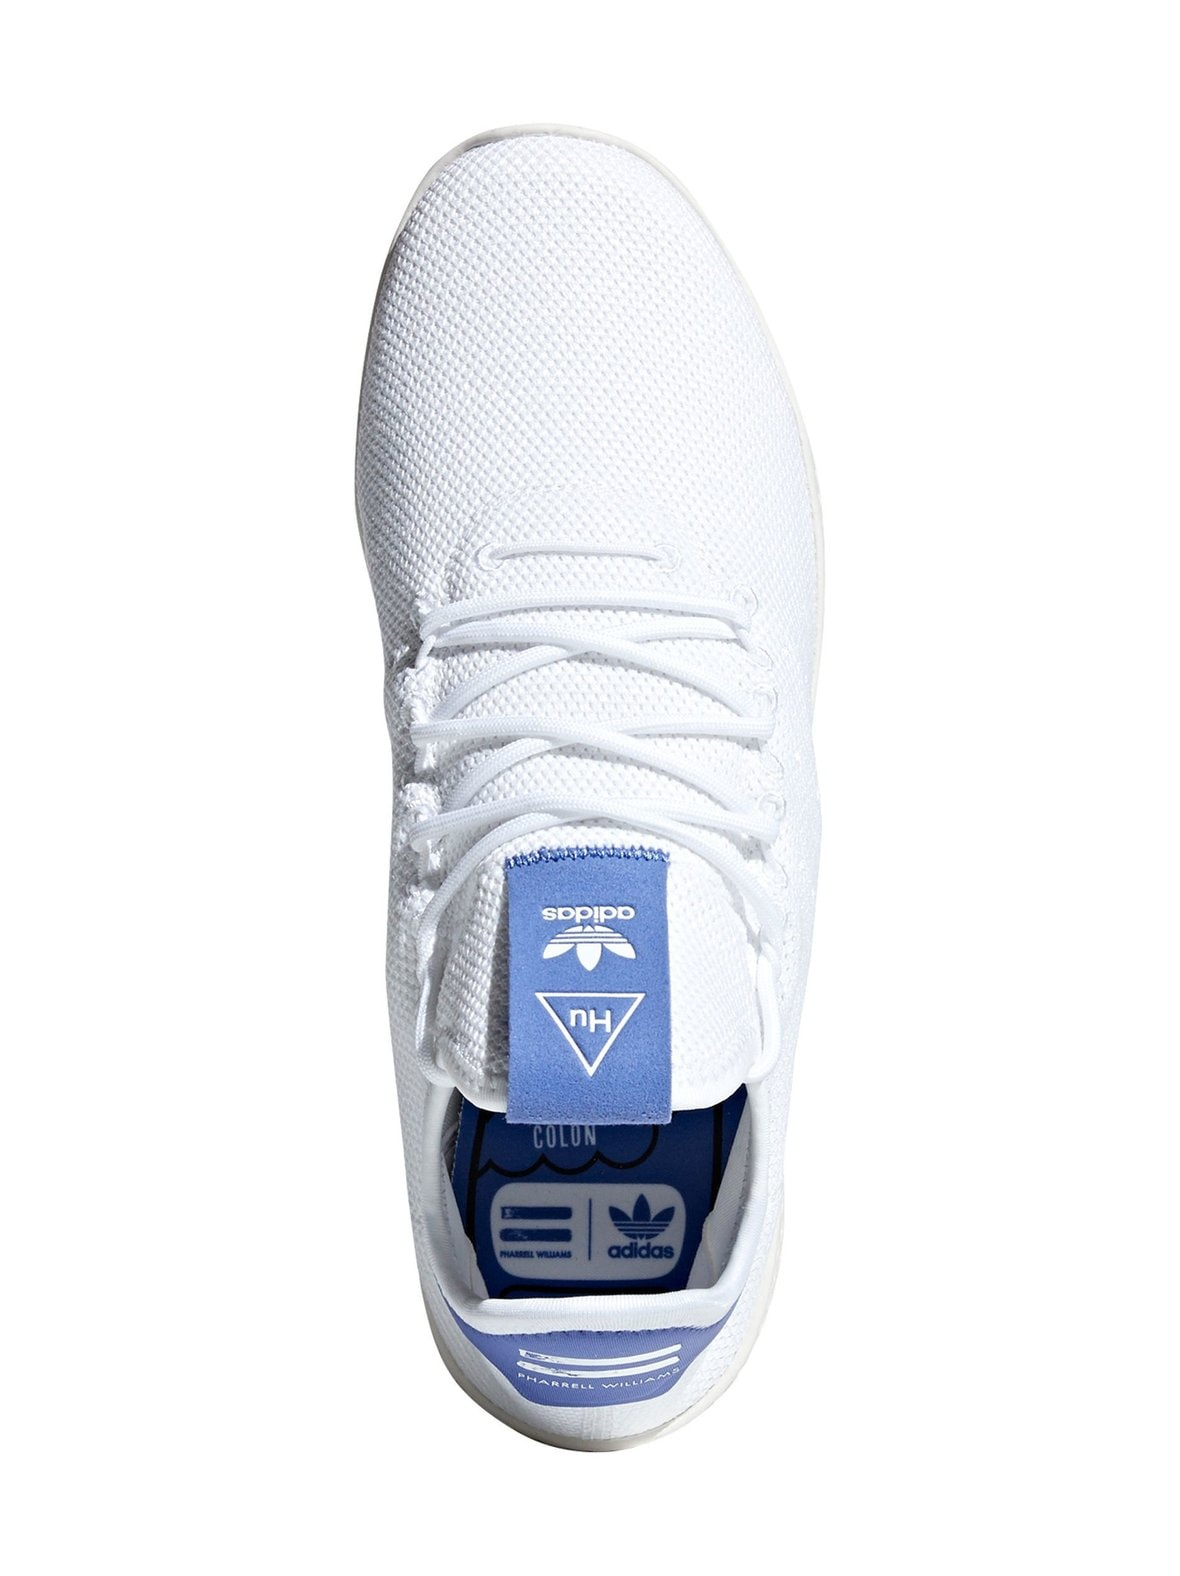 White Williams Pharrell Adidas Originals valkoinen Hu Tennis ArFAq0S